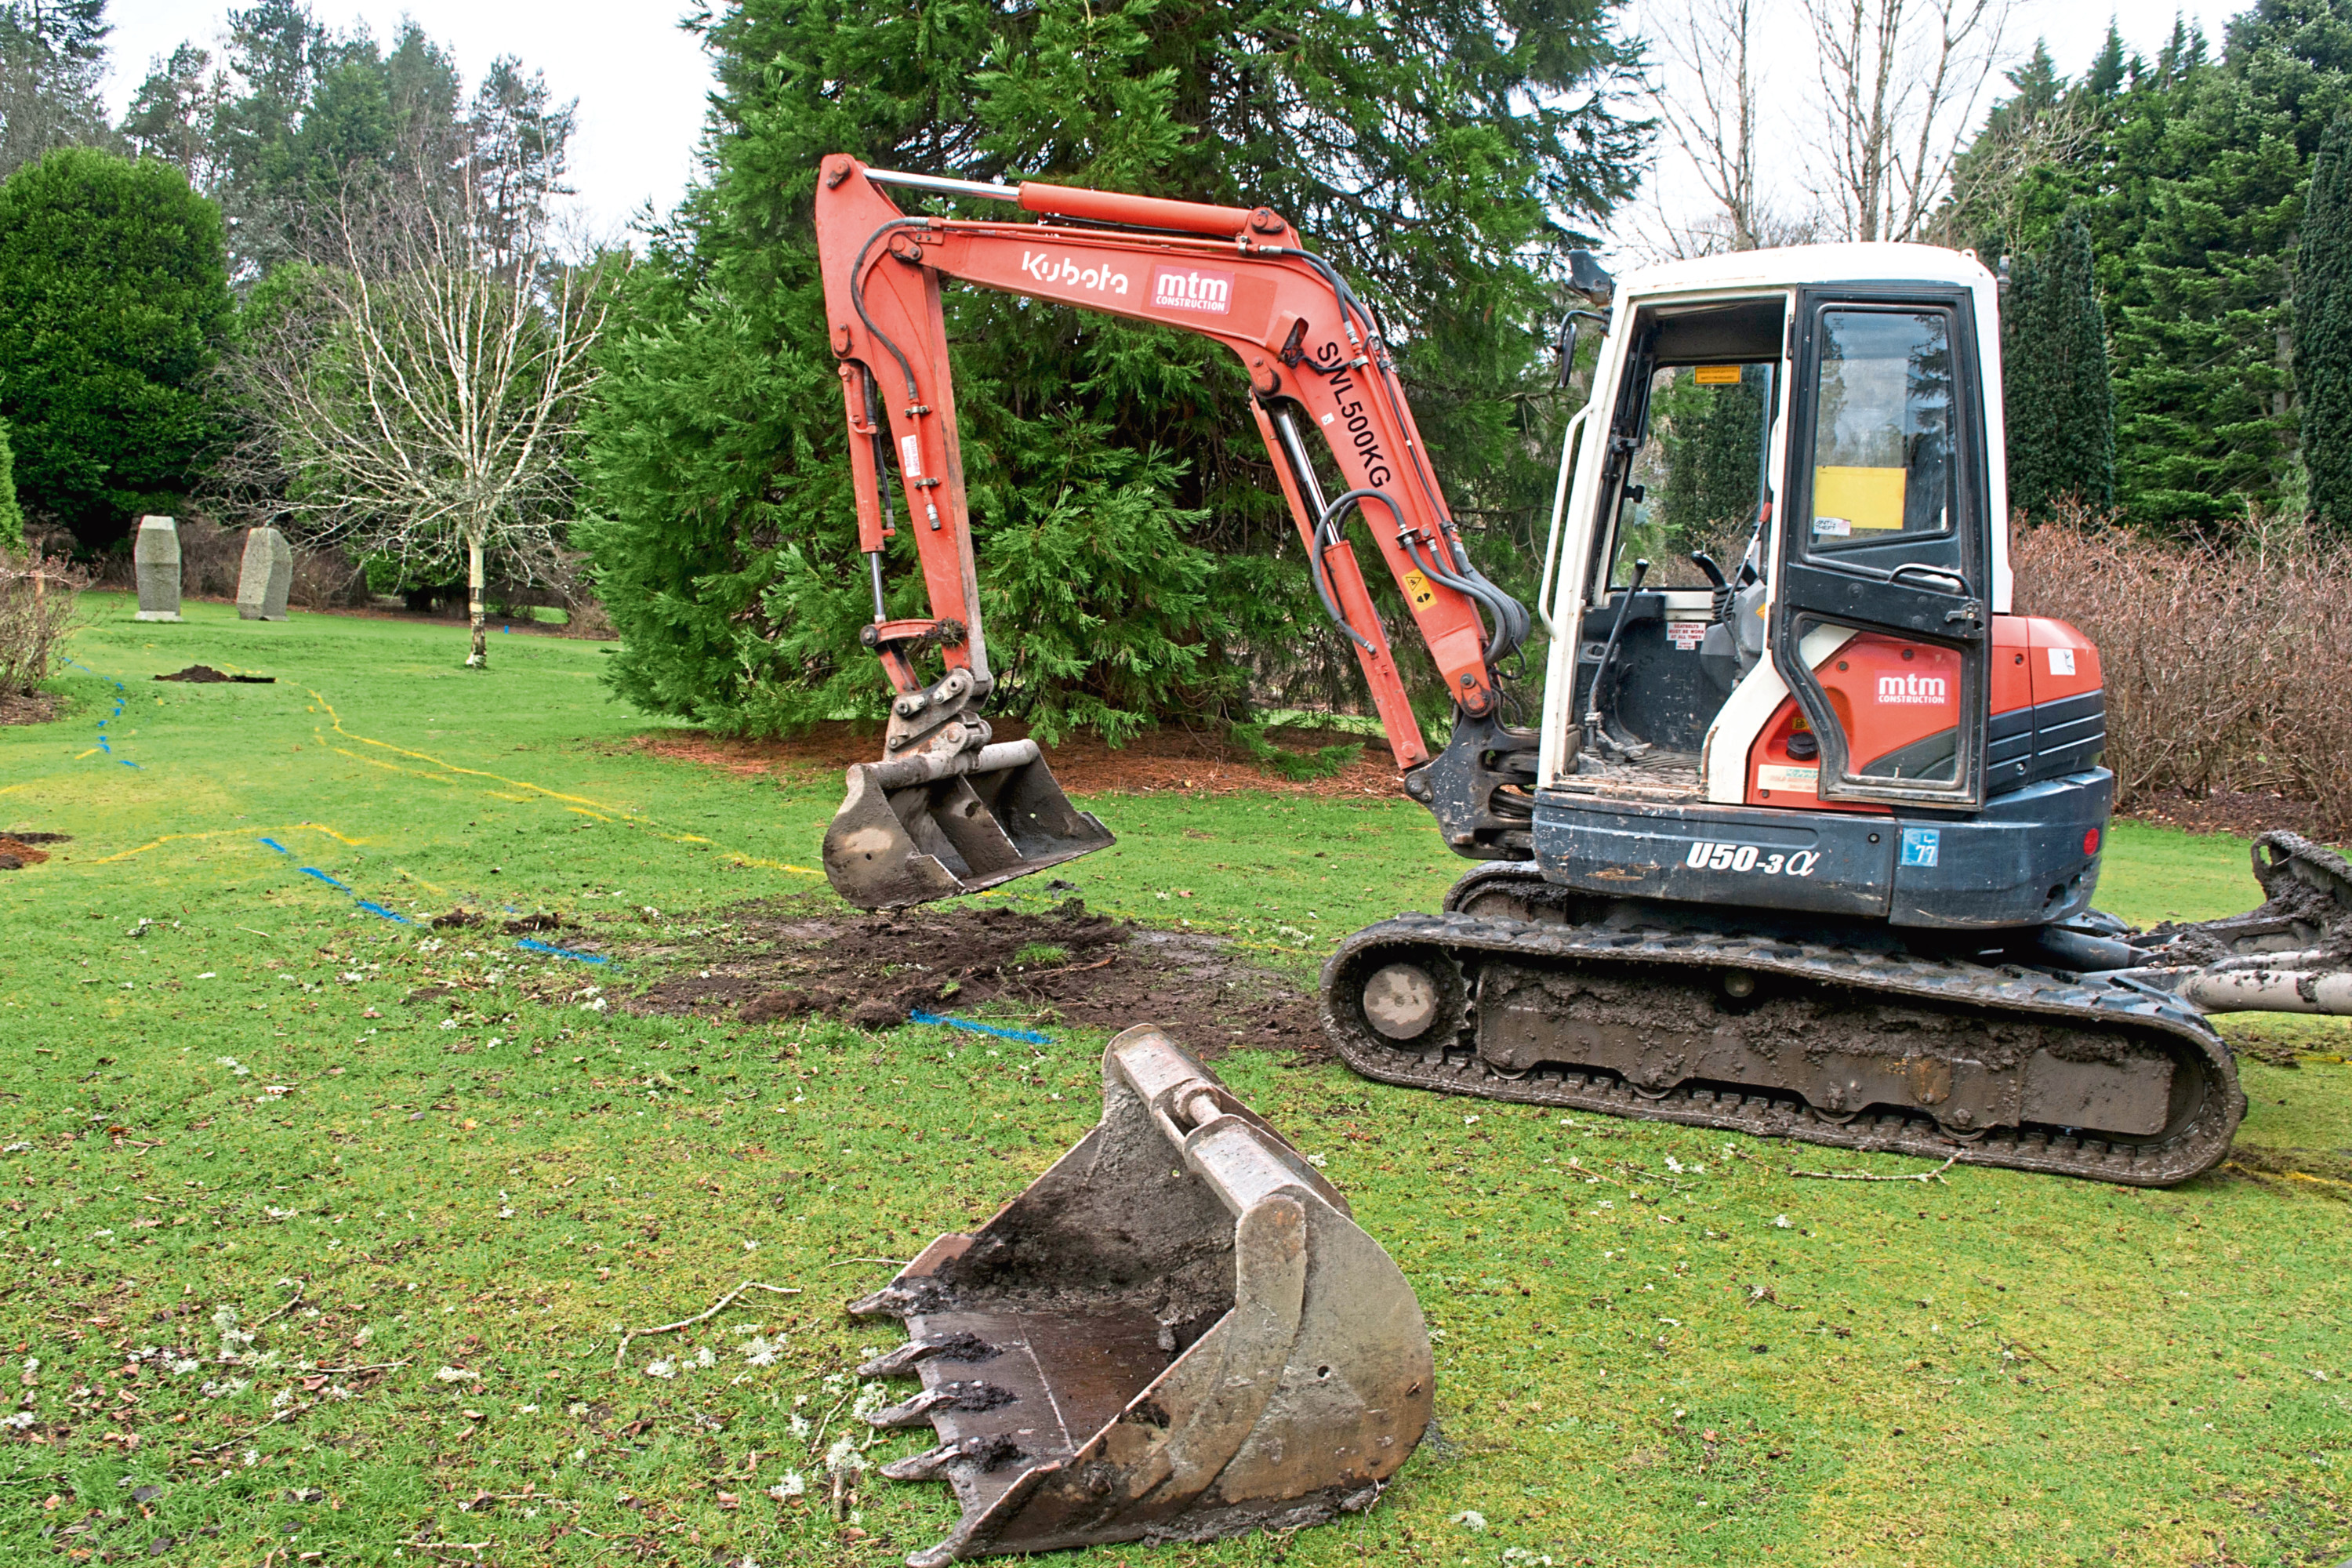 Work has started on a memorial garden for the victims of the baby ashes scandal and their families.